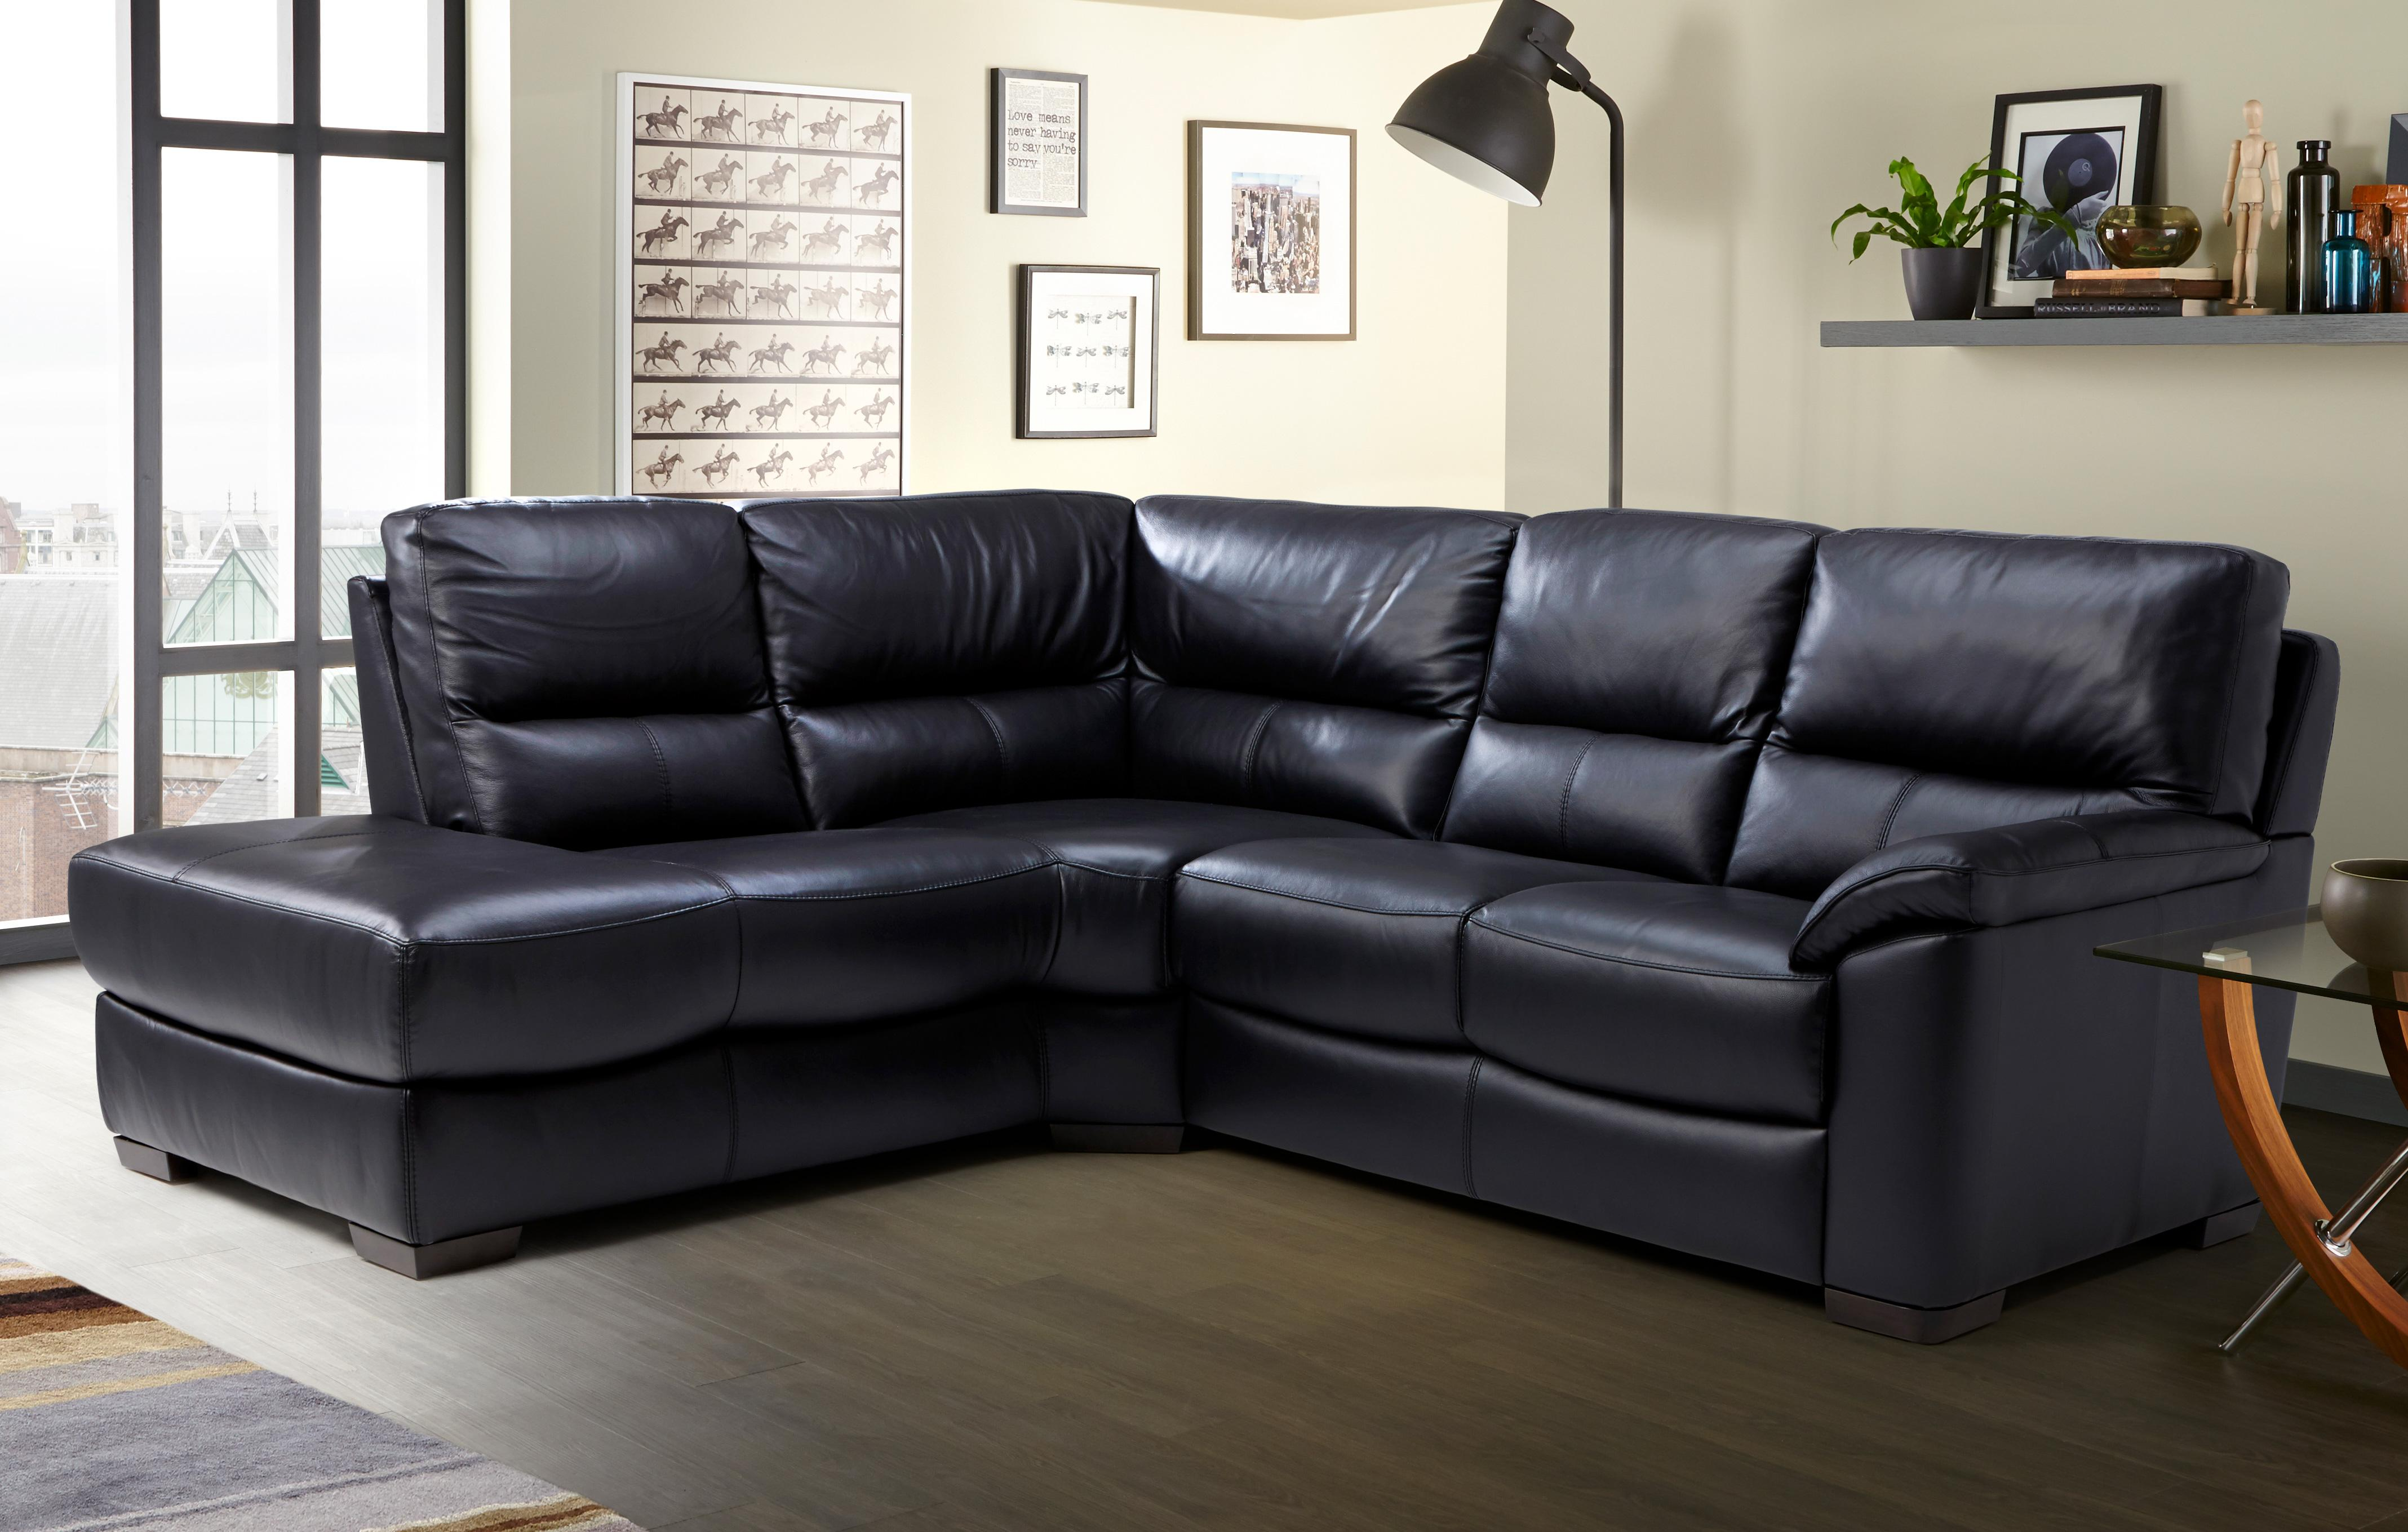 Www Dfs Co Uk Sofas Leather Review Home Co